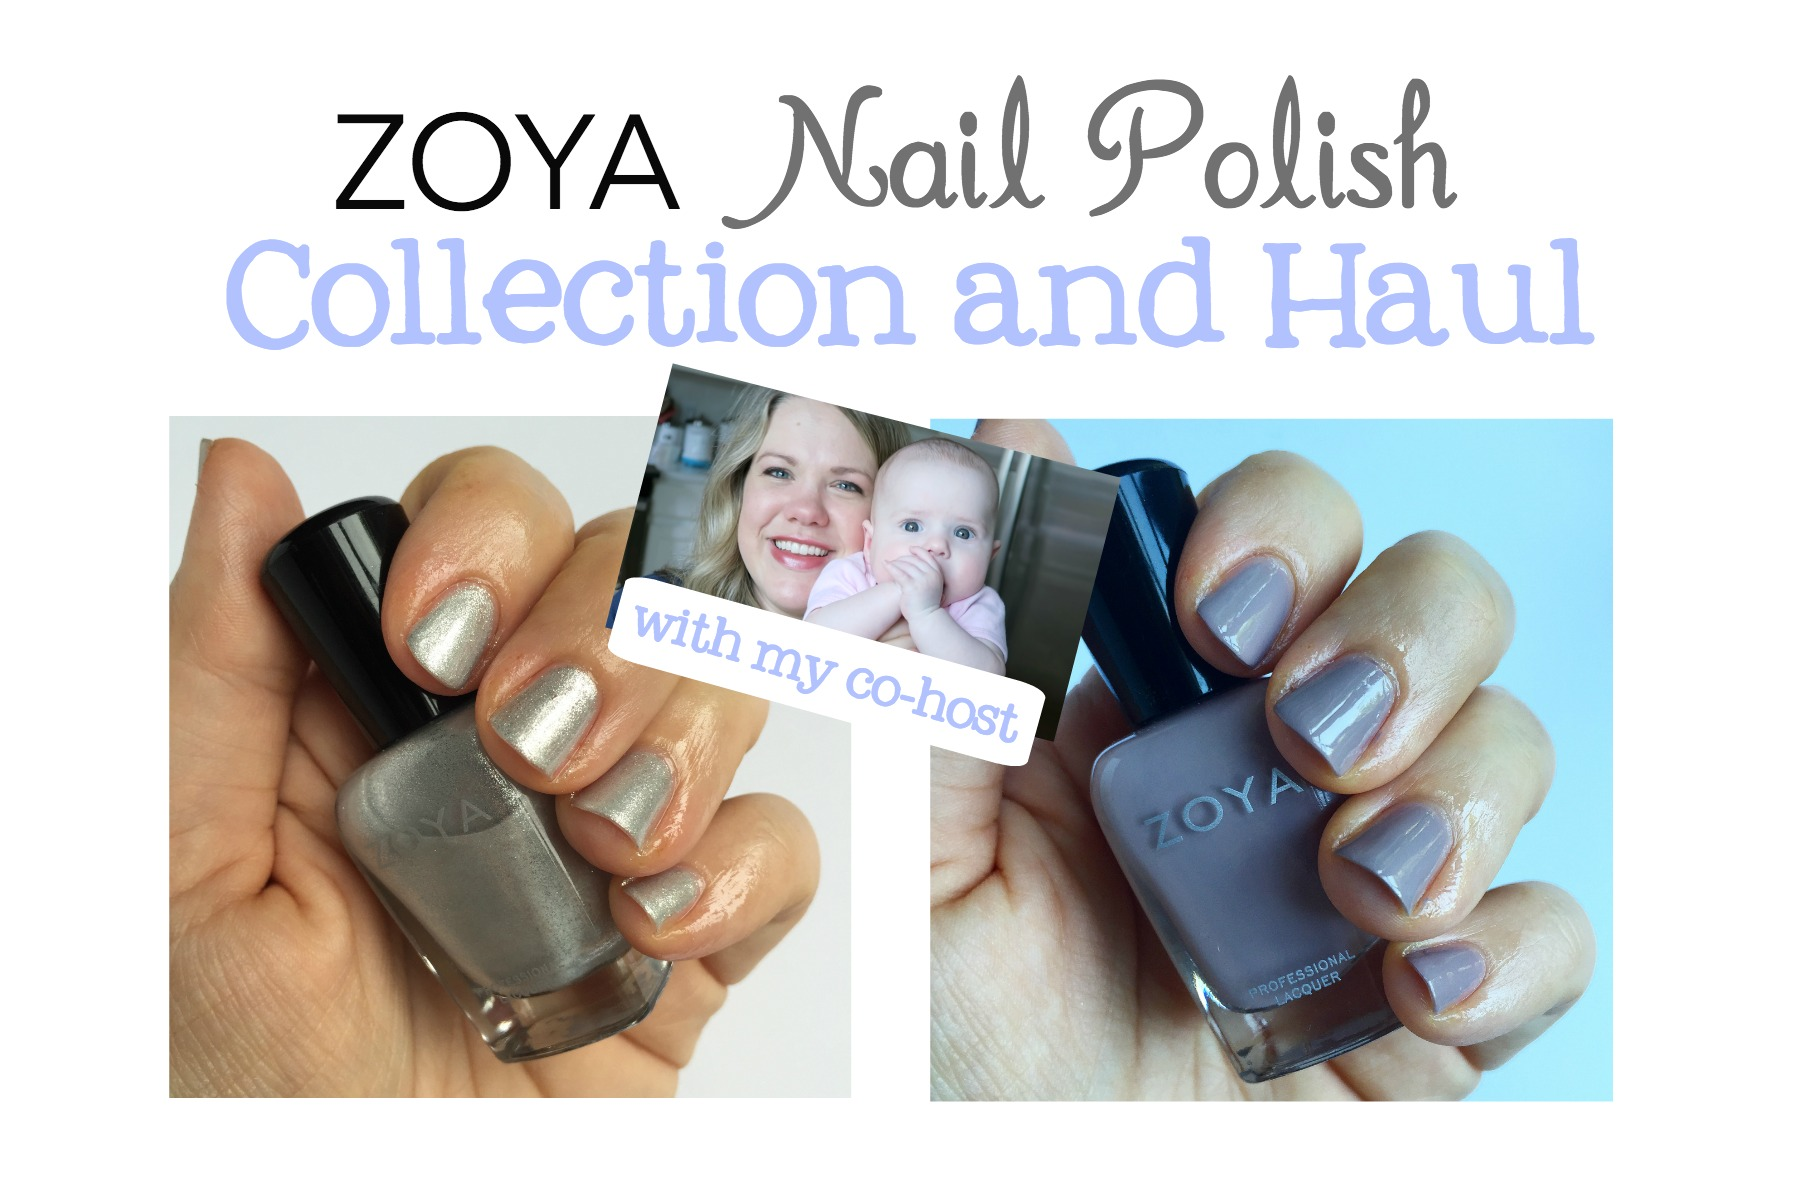 Zoya Nail Polish Collection and Haul